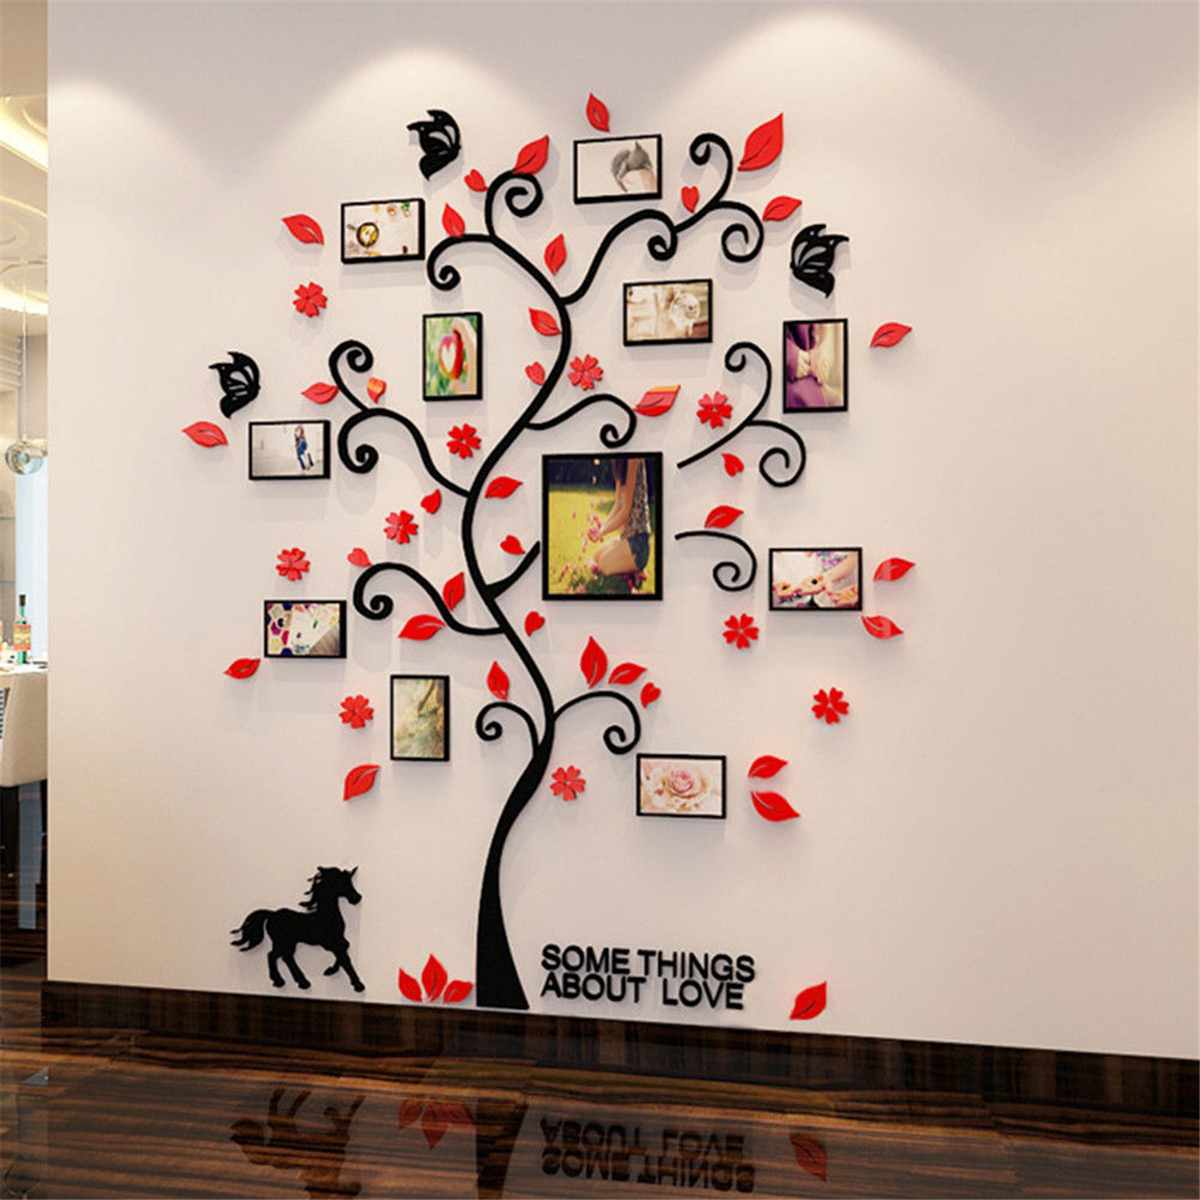 Acrylic 3D Family Photo Frame Tree Wall Stickers Removable DIY Art Wall Poster Decals Poster For Living Room Bedroom Home Decor 7